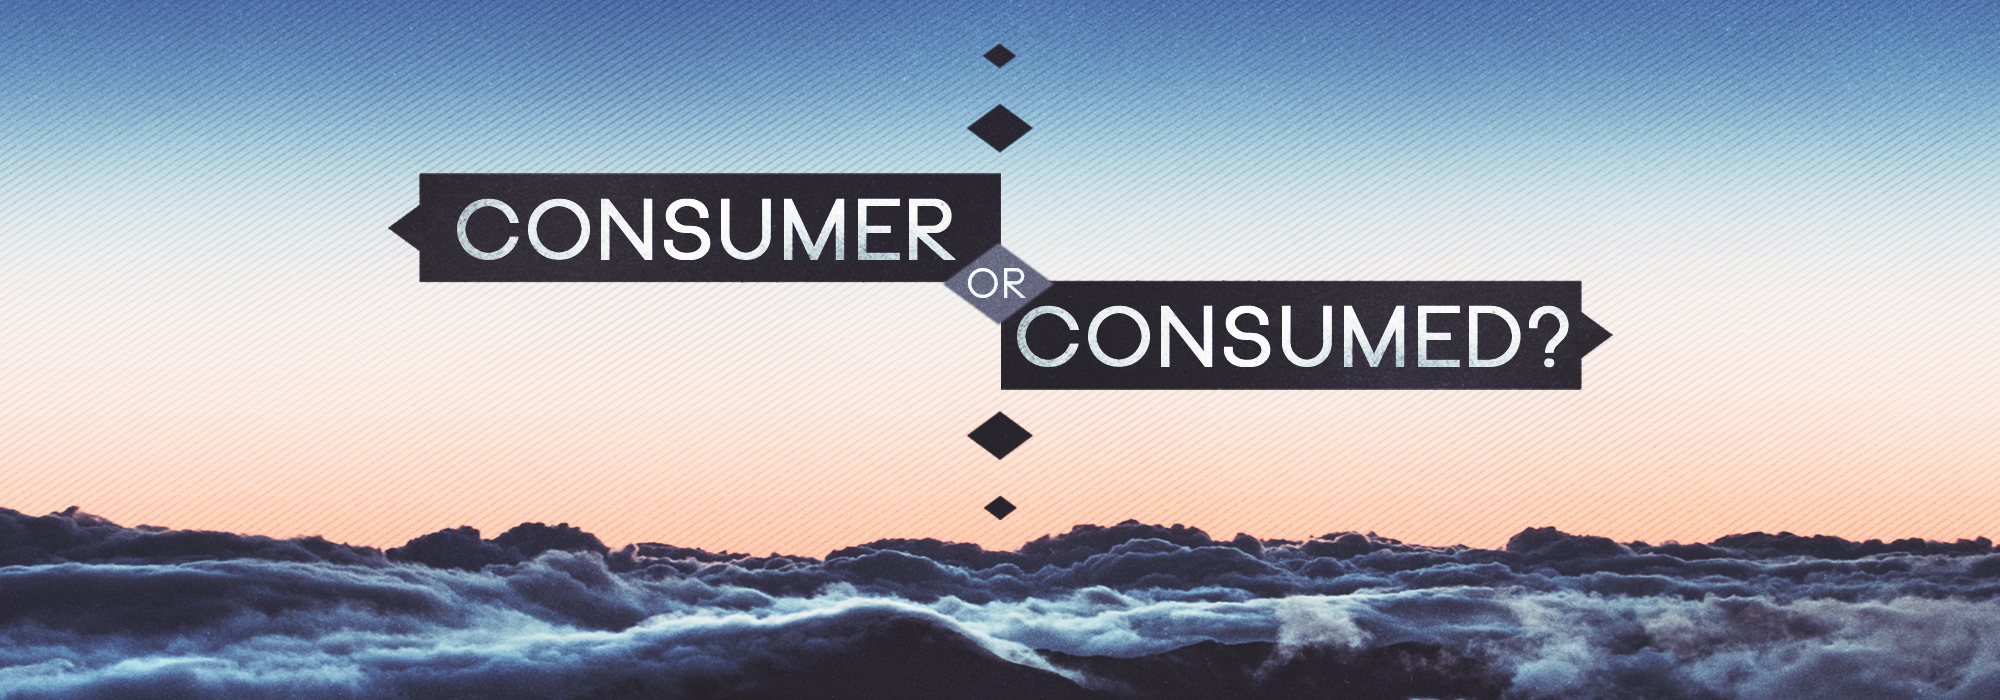 Consumer or Consumed